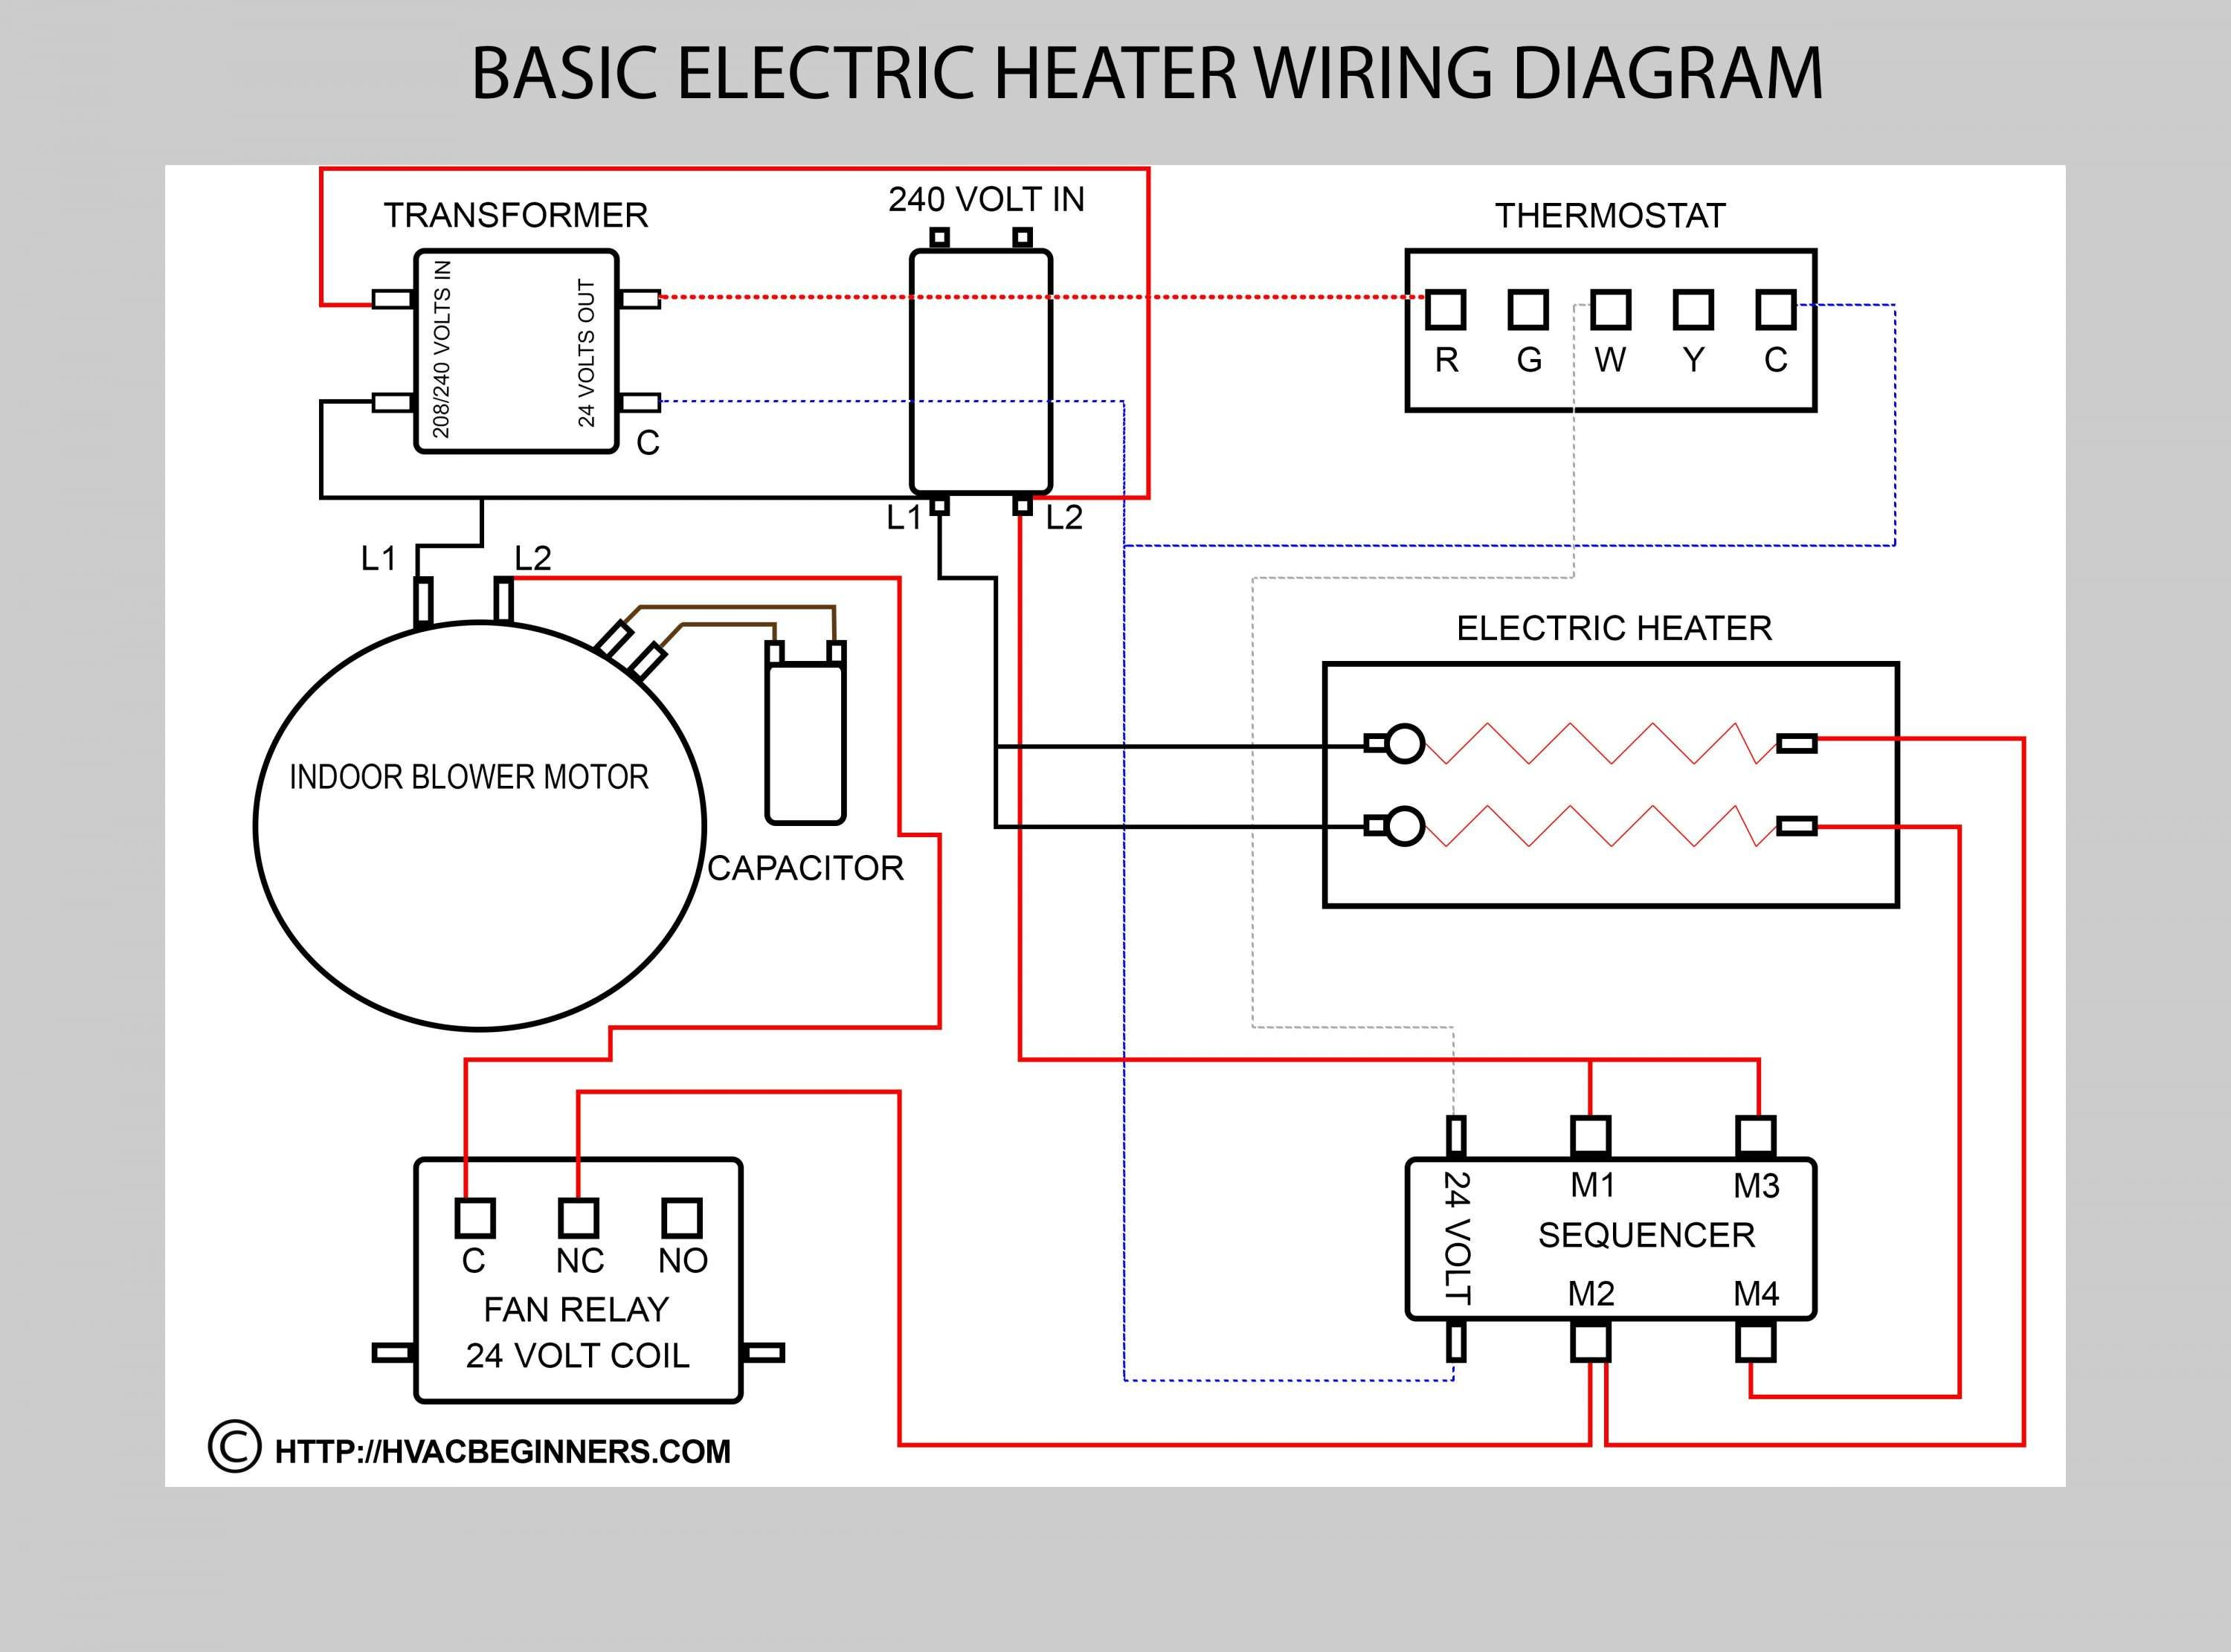 Wall Mount Space Heaters For Residential Electrical Wiring Diagrams -  seniorsclub.it electron-gossip - electron-gossip.pietrodavico.itdiagram database - Pietro da Vico